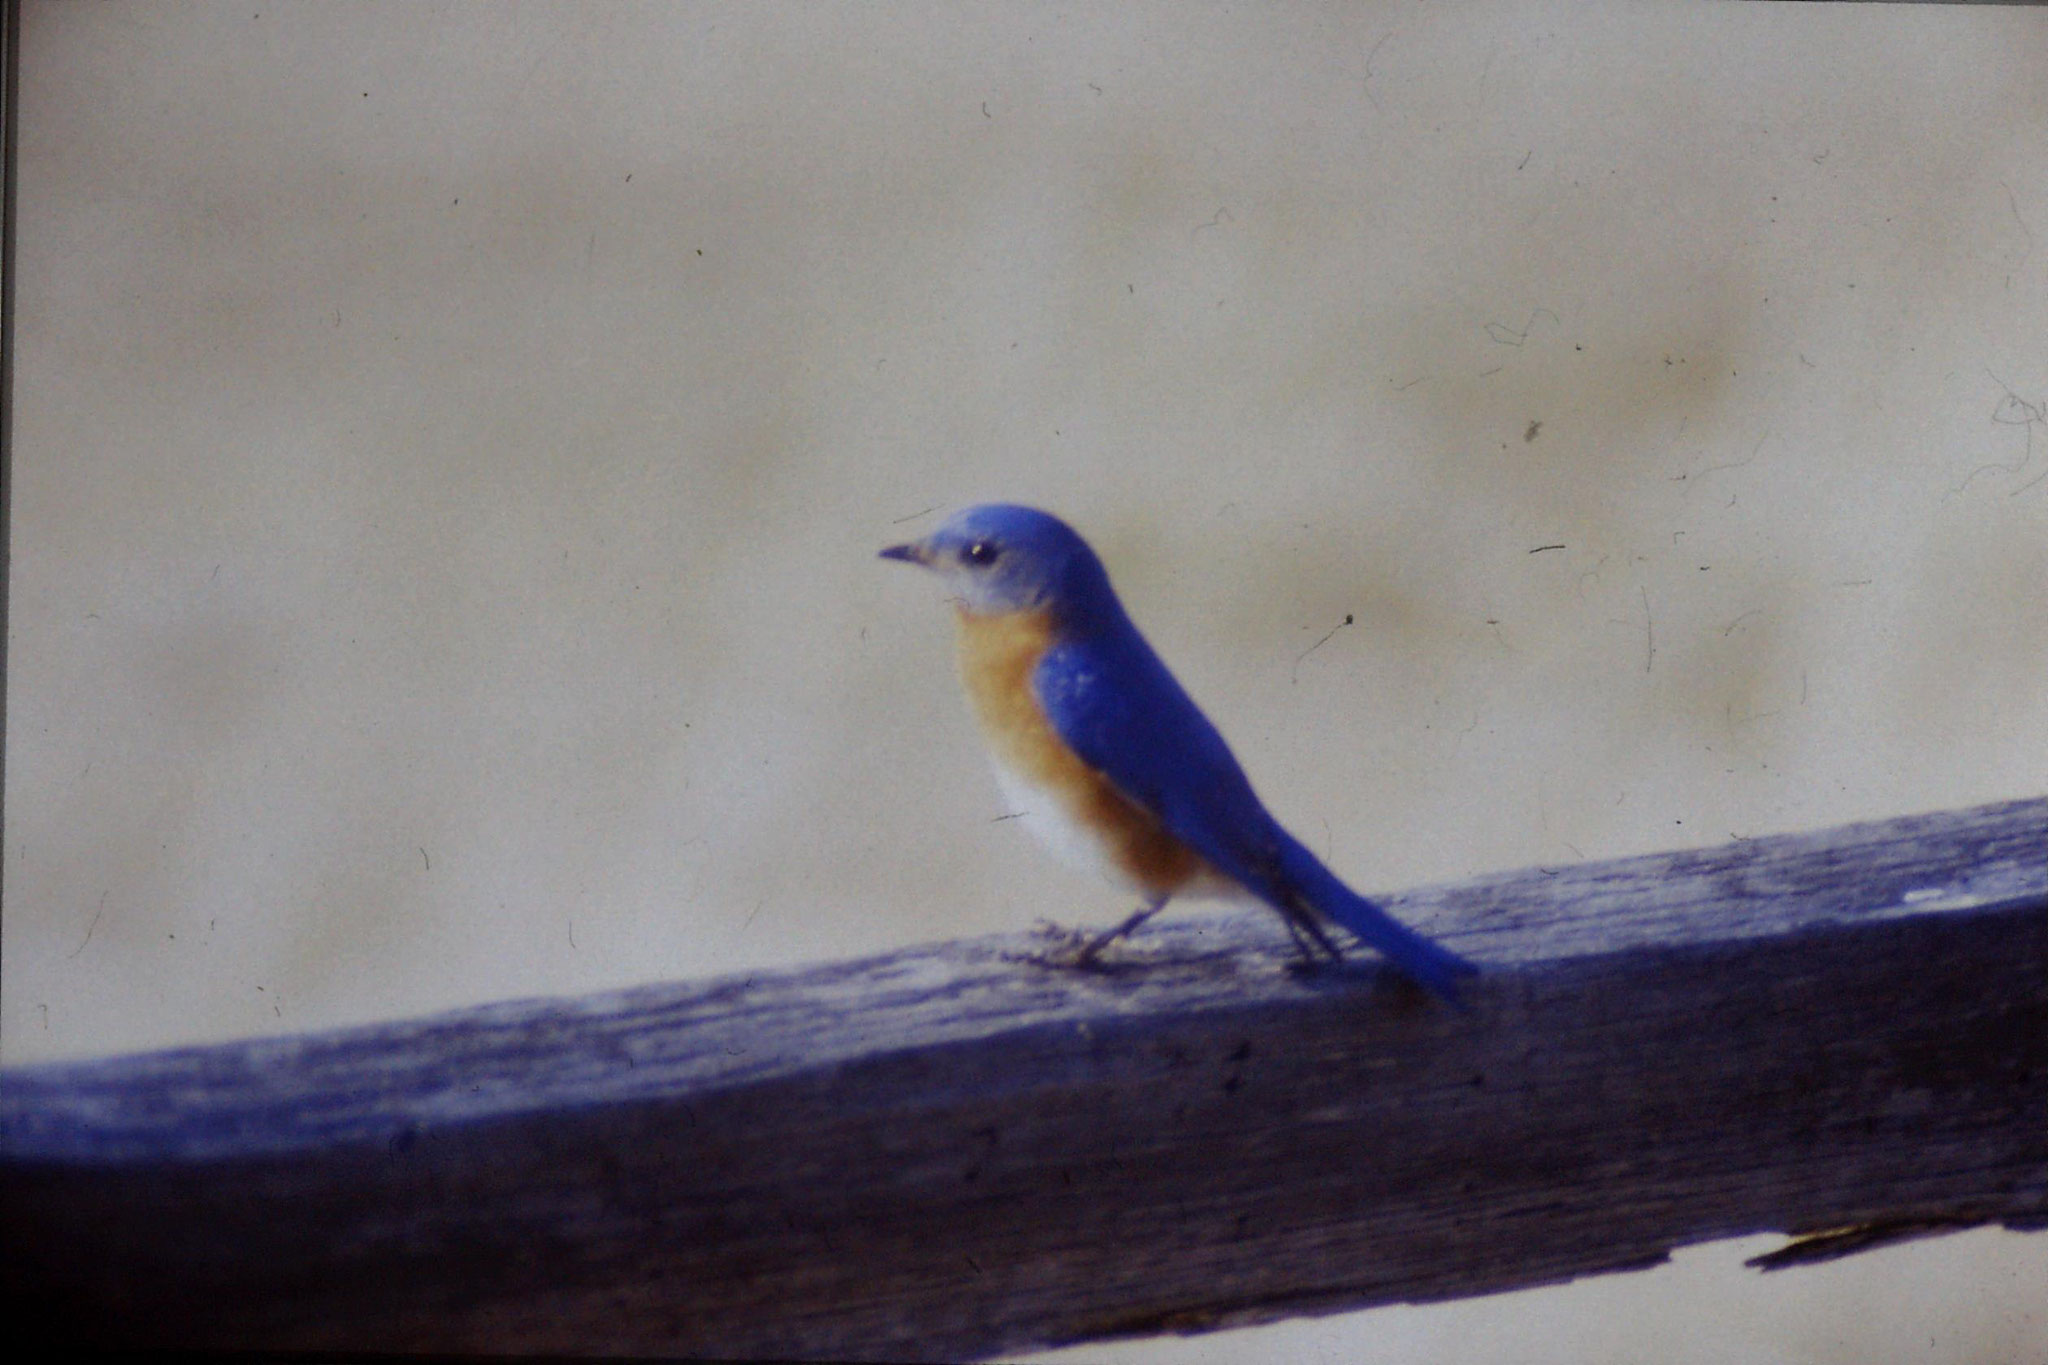 21/3/1991: 4: Blue Bird at Mary Potter's place